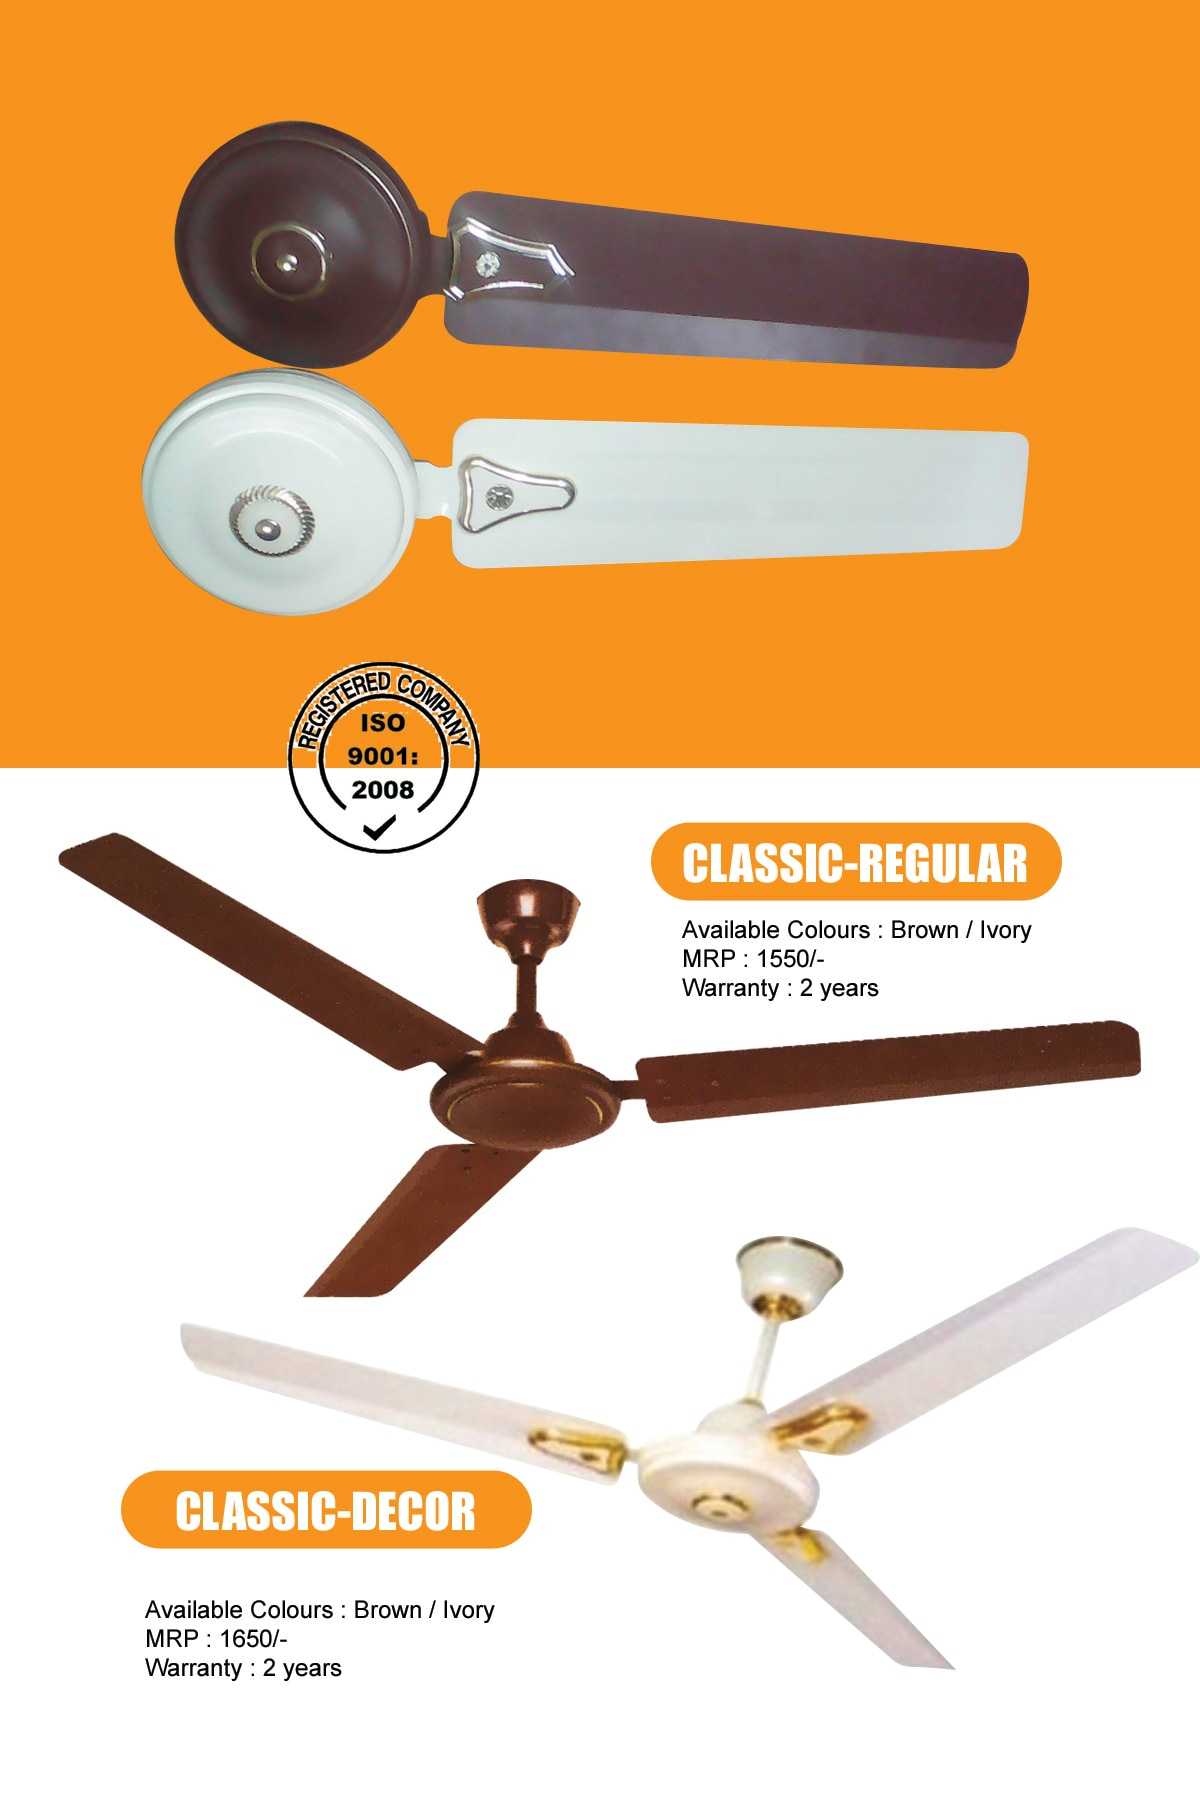 Now available 8 models in Telangana , AP, Karnataka and odisha  market! ceiling fans , table fans, Pedestal fans, Wall fans and coolers!